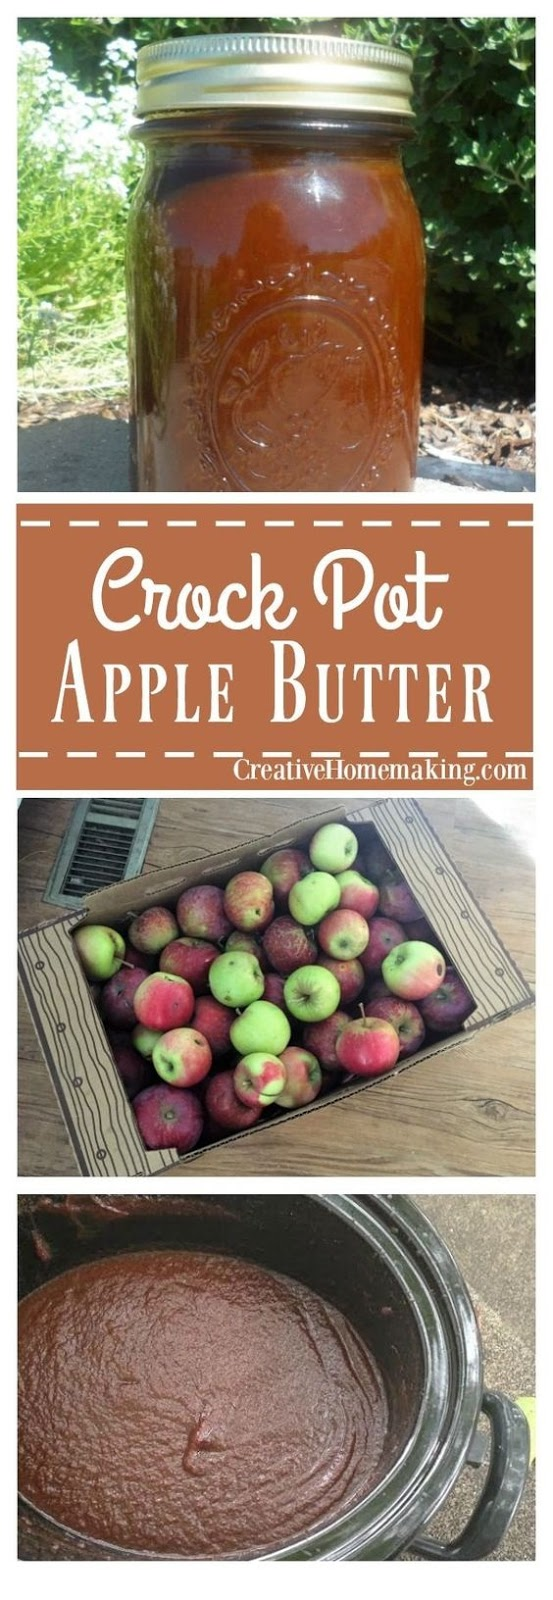 Crock Pot Apple Butter Recipe